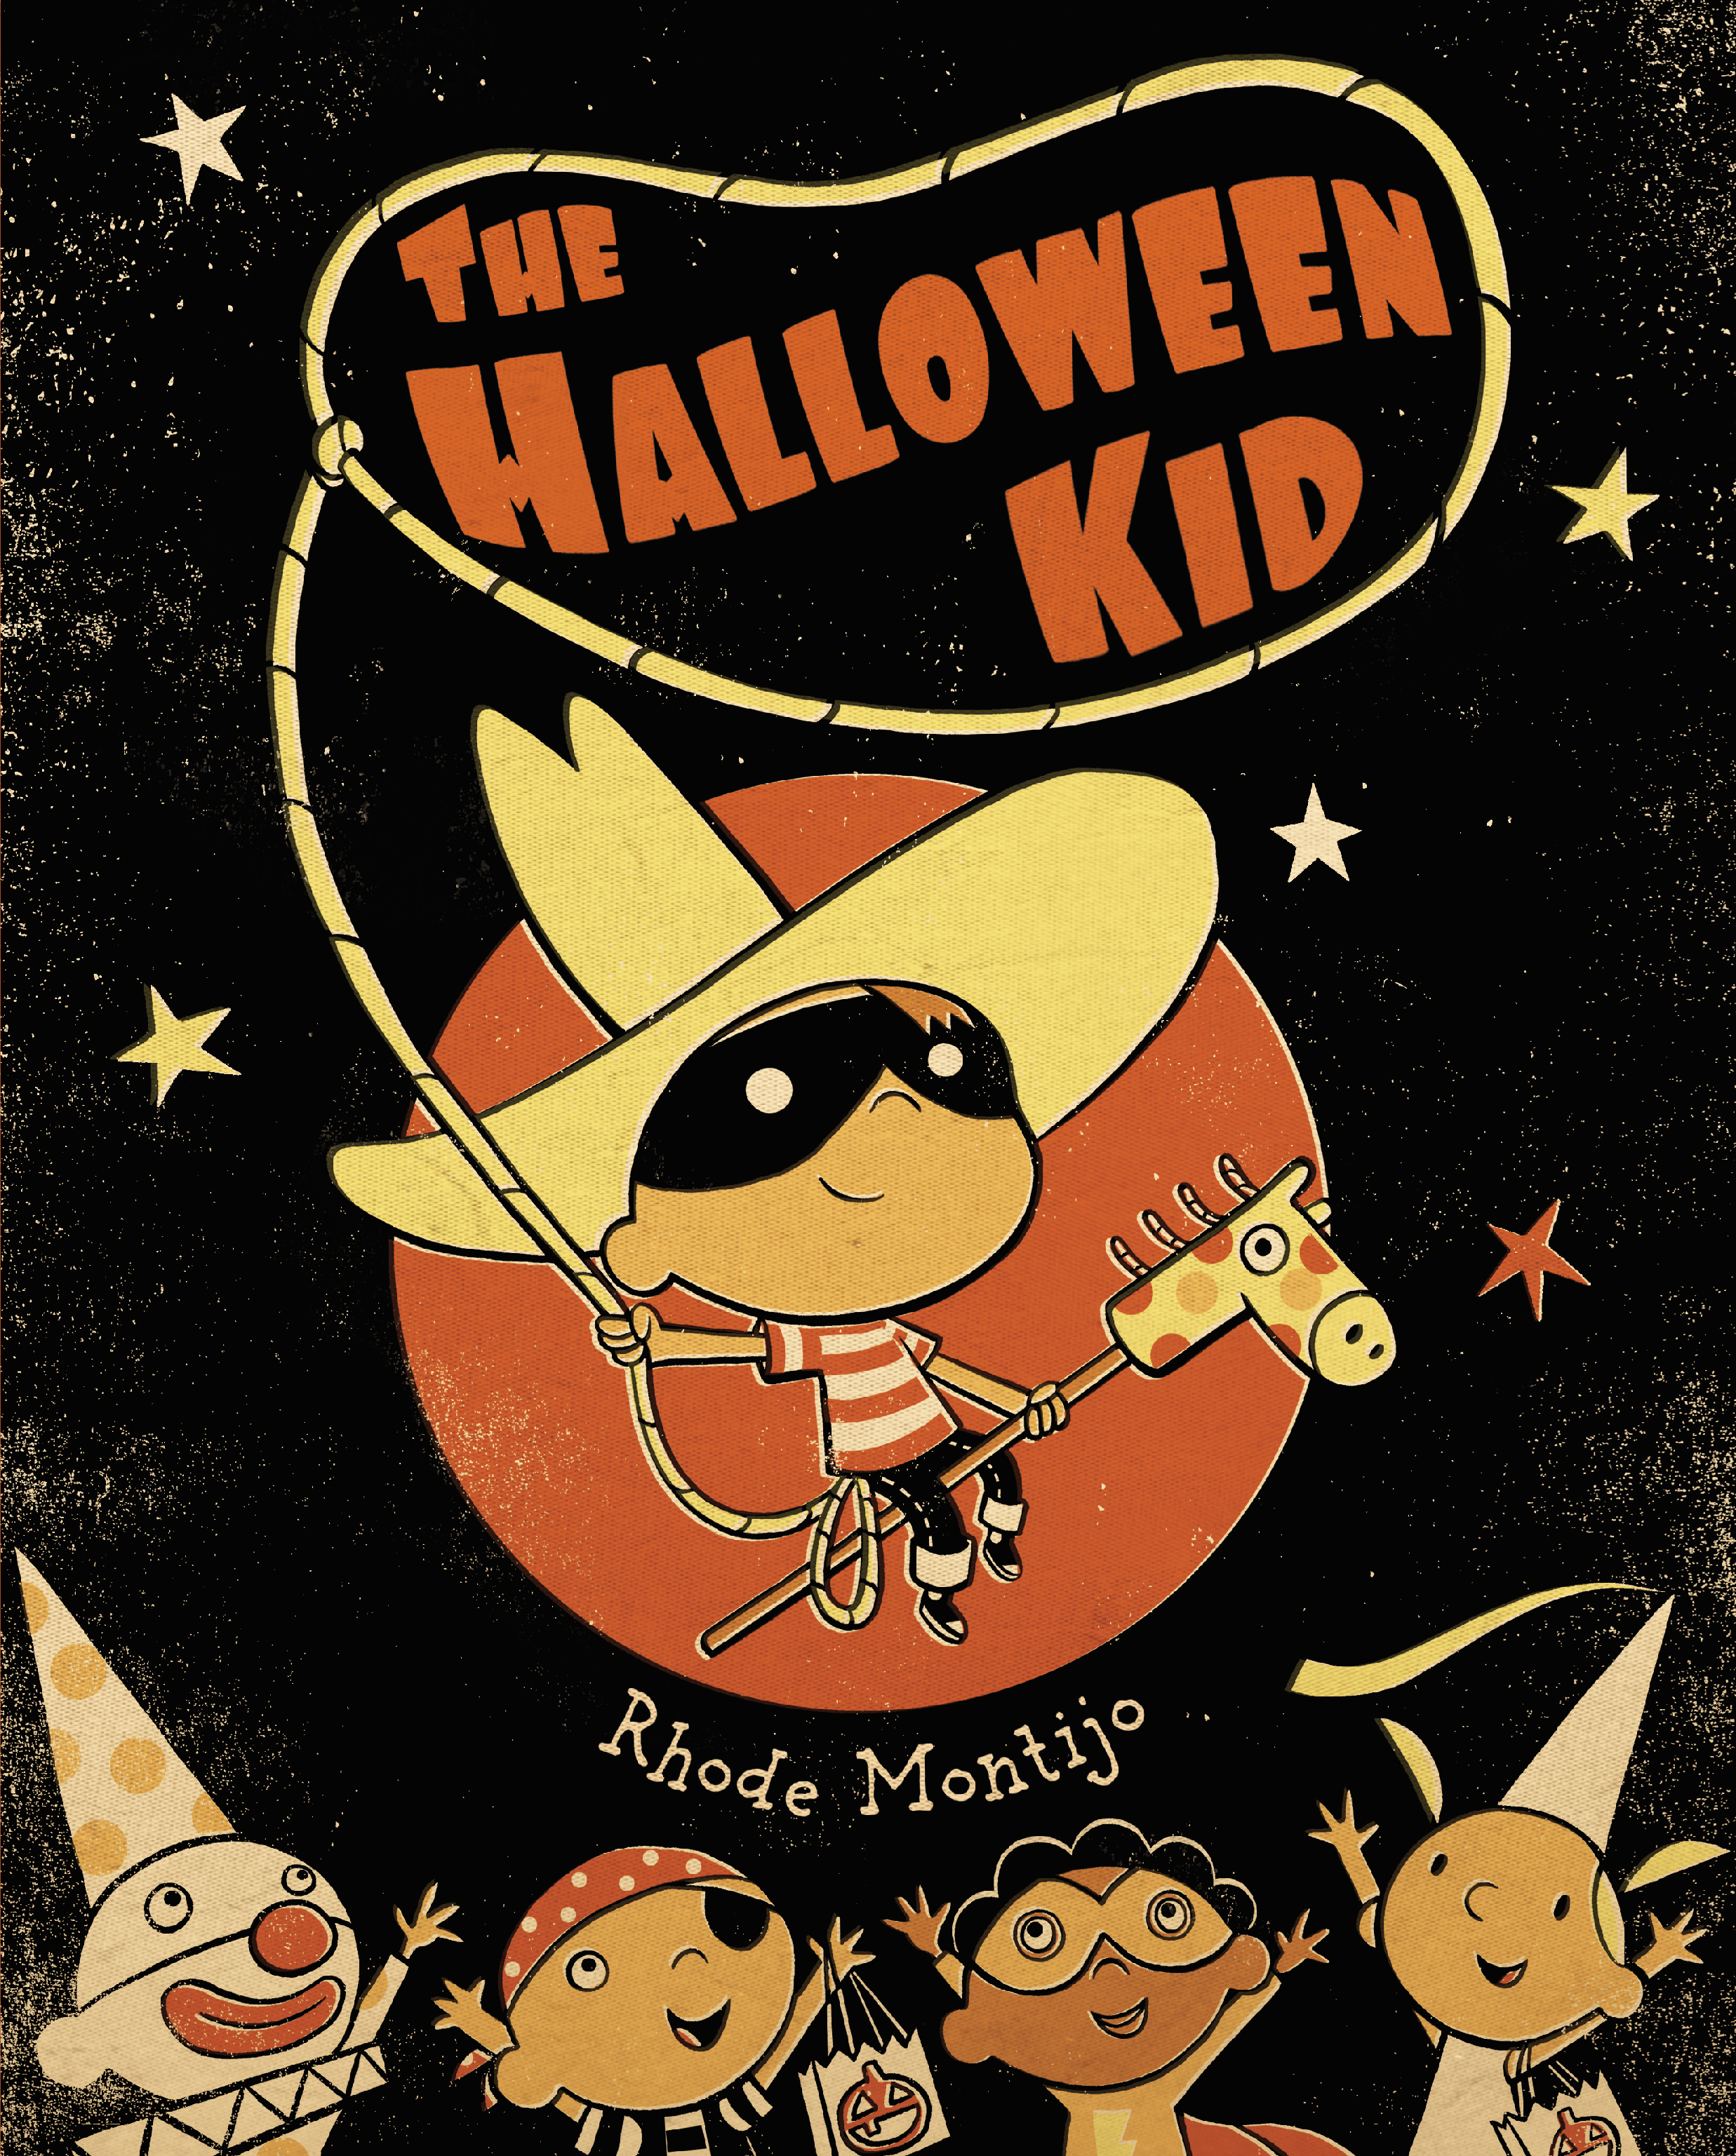 The Halloween Kid | Book by Rhode Montijo | Official Publisher ...